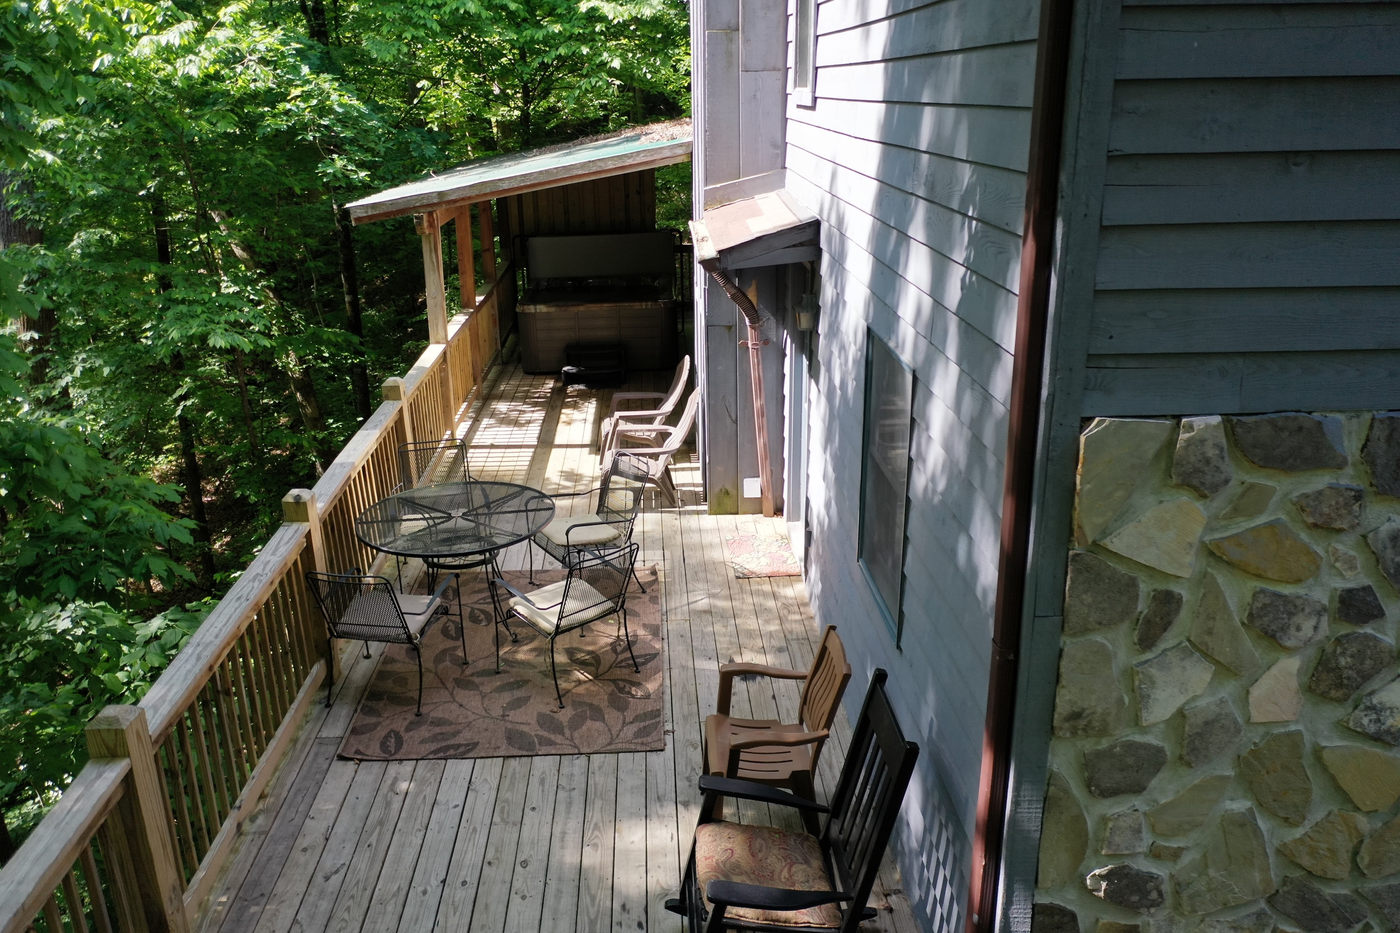 back porch from the air